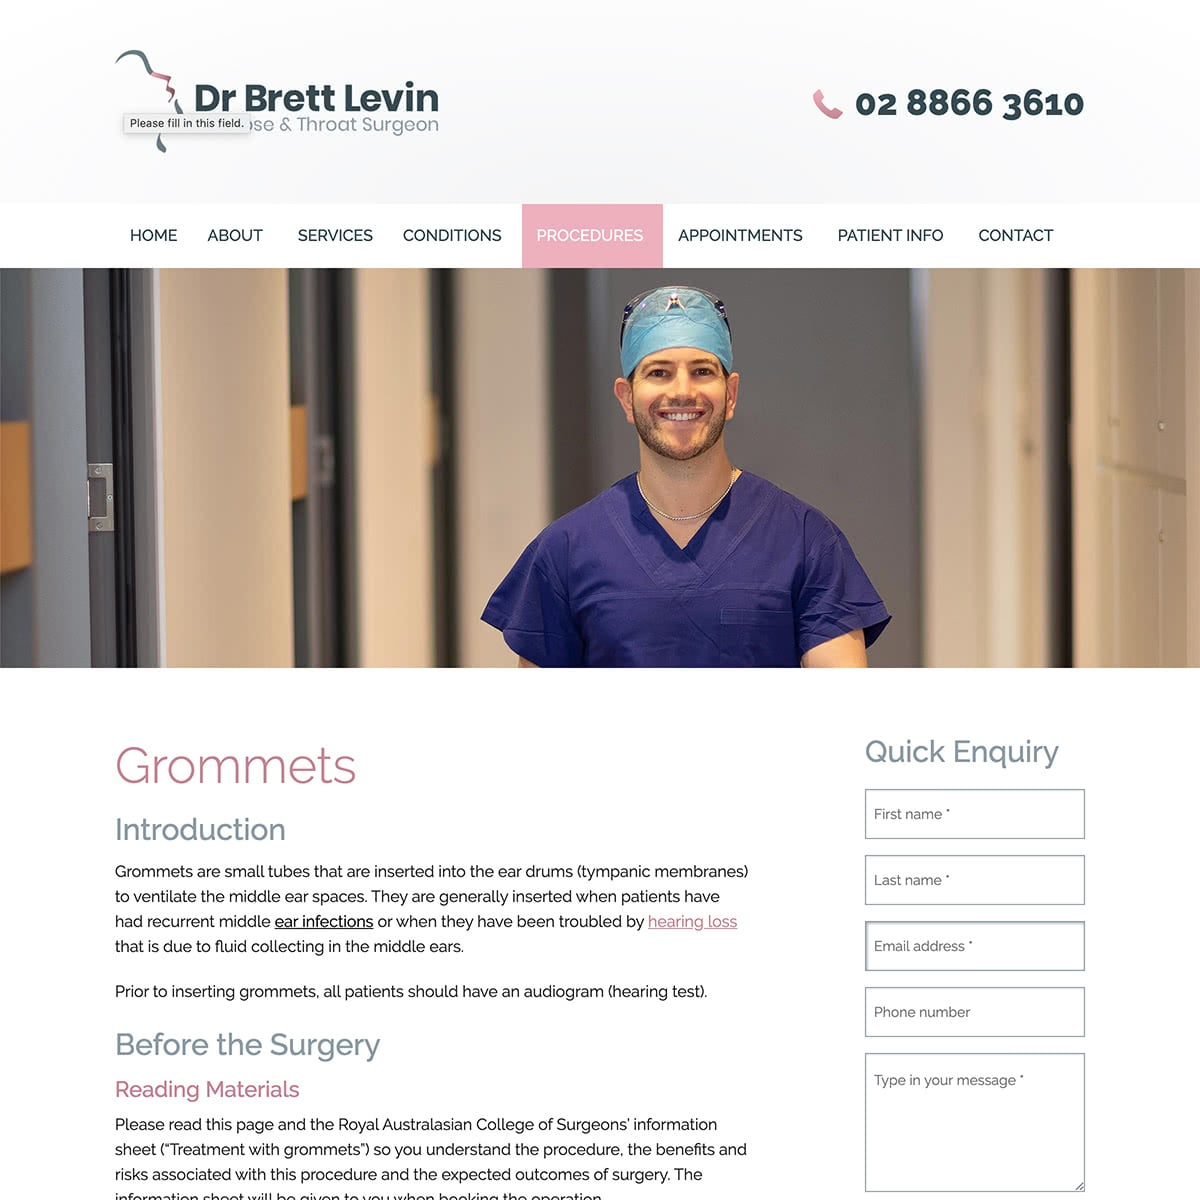 Dr Brett Levin - Procedures